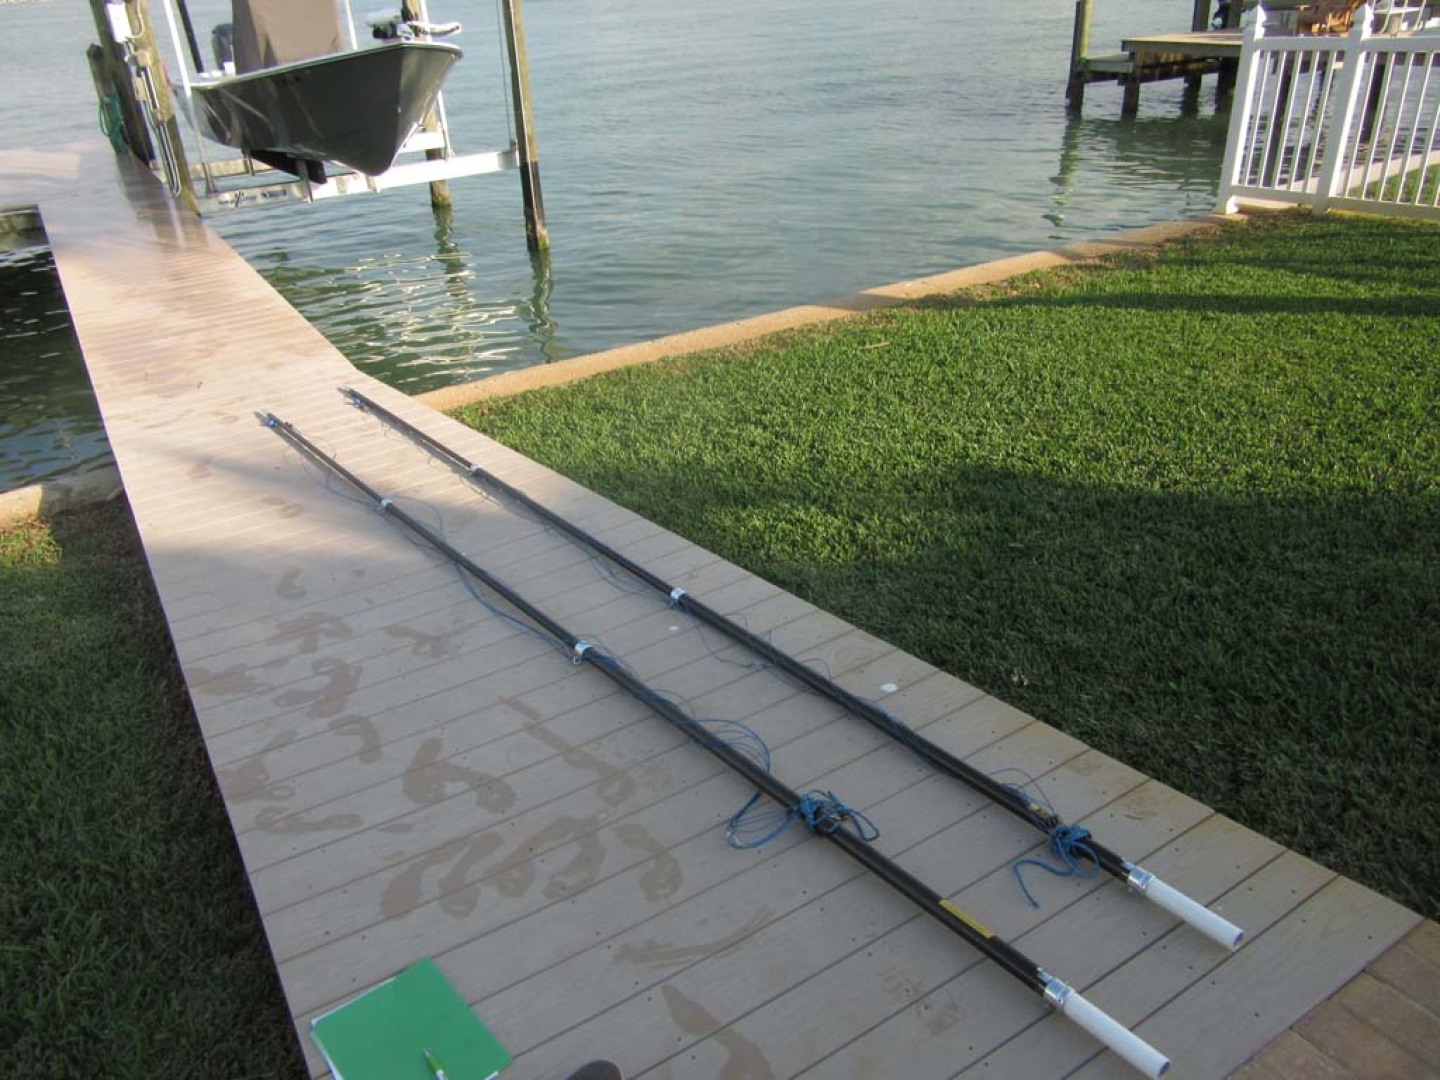 SeaHunter-39 Center Console 2017-SQUEEZE PLAY II Madeira Beach-Florida-United States-Carbon Fiber Outrigger Poles-1117911 | Thumbnail